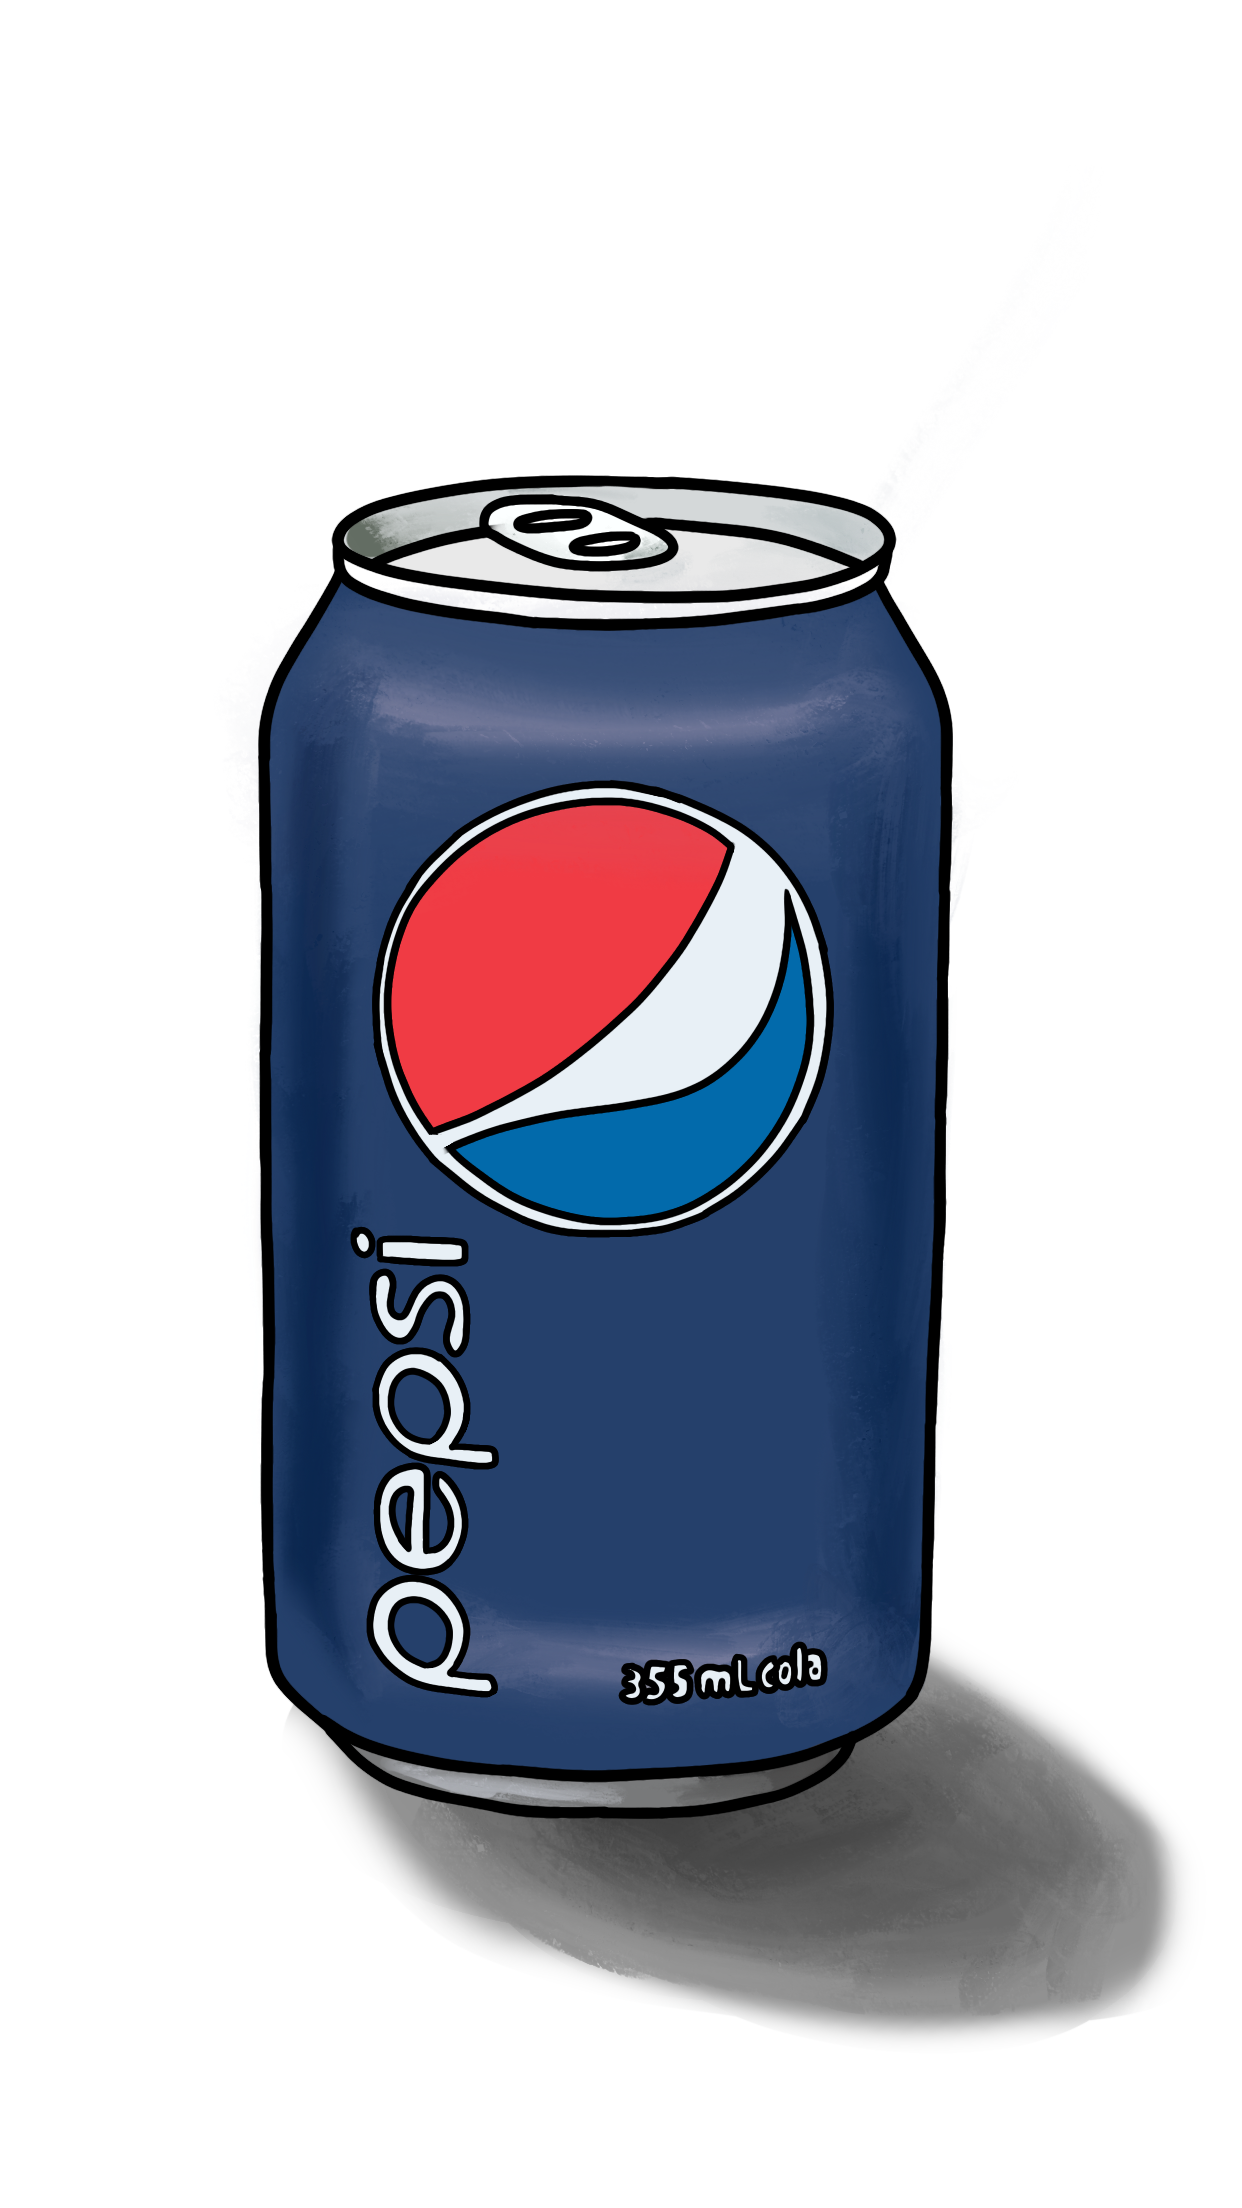 Pin By Charissabelle On Drawings Pepsi Small Art Cute Food Drawings